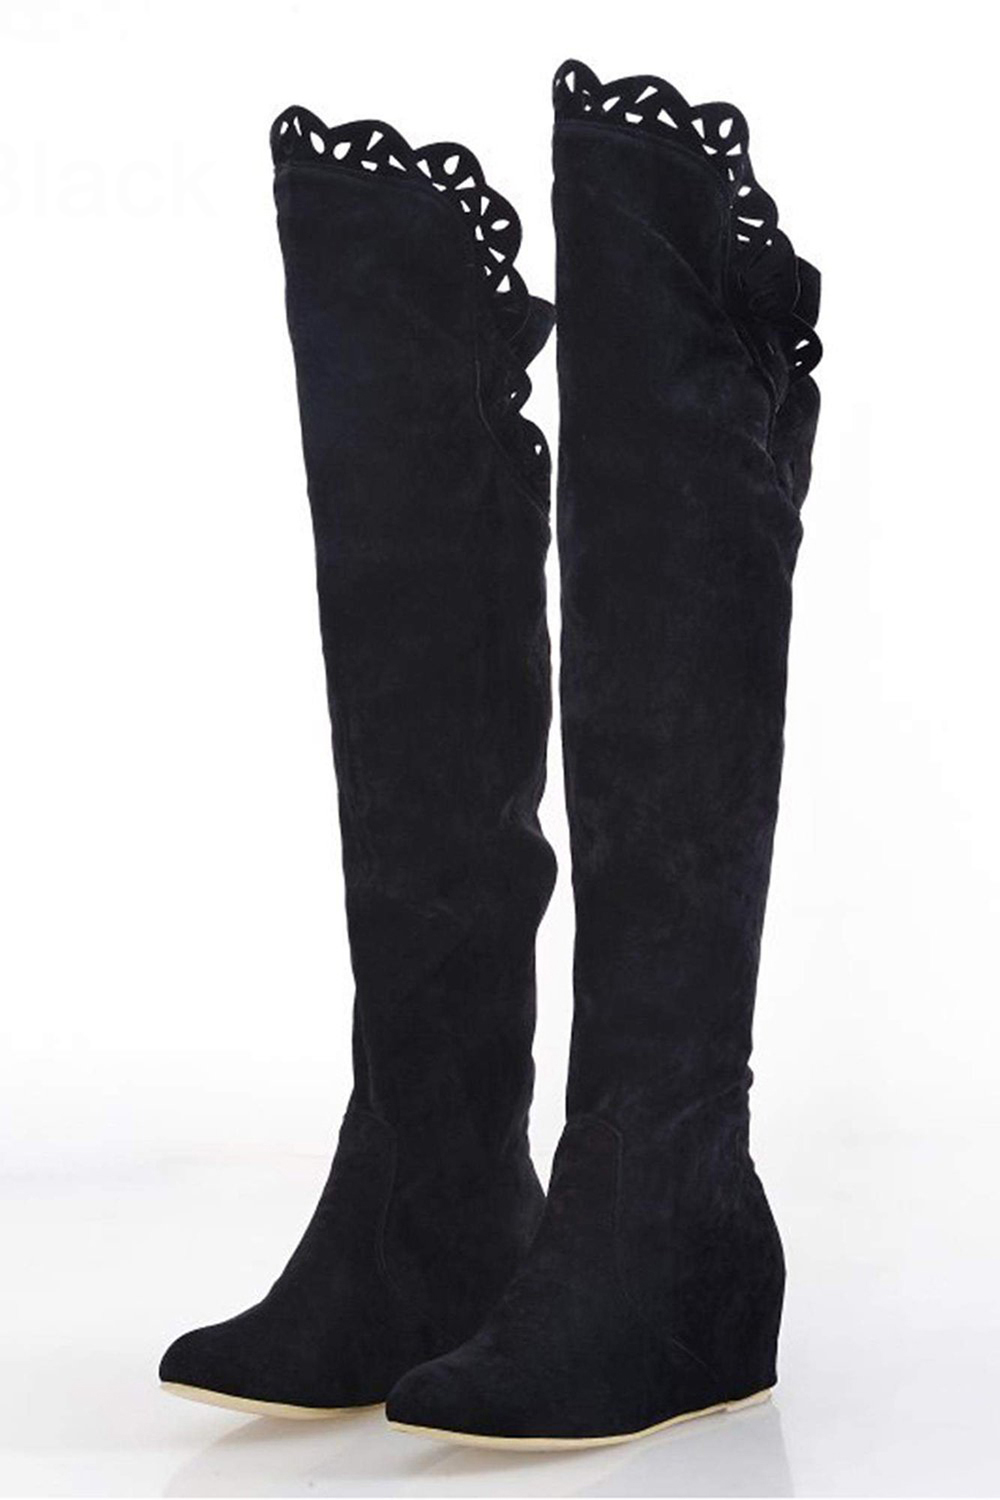 TEXU Women Stretch Faux Suede Slim Thigh lace High Boots Sexy Fashion Over the Knee Boots High Heels Woman Shoe 35-39